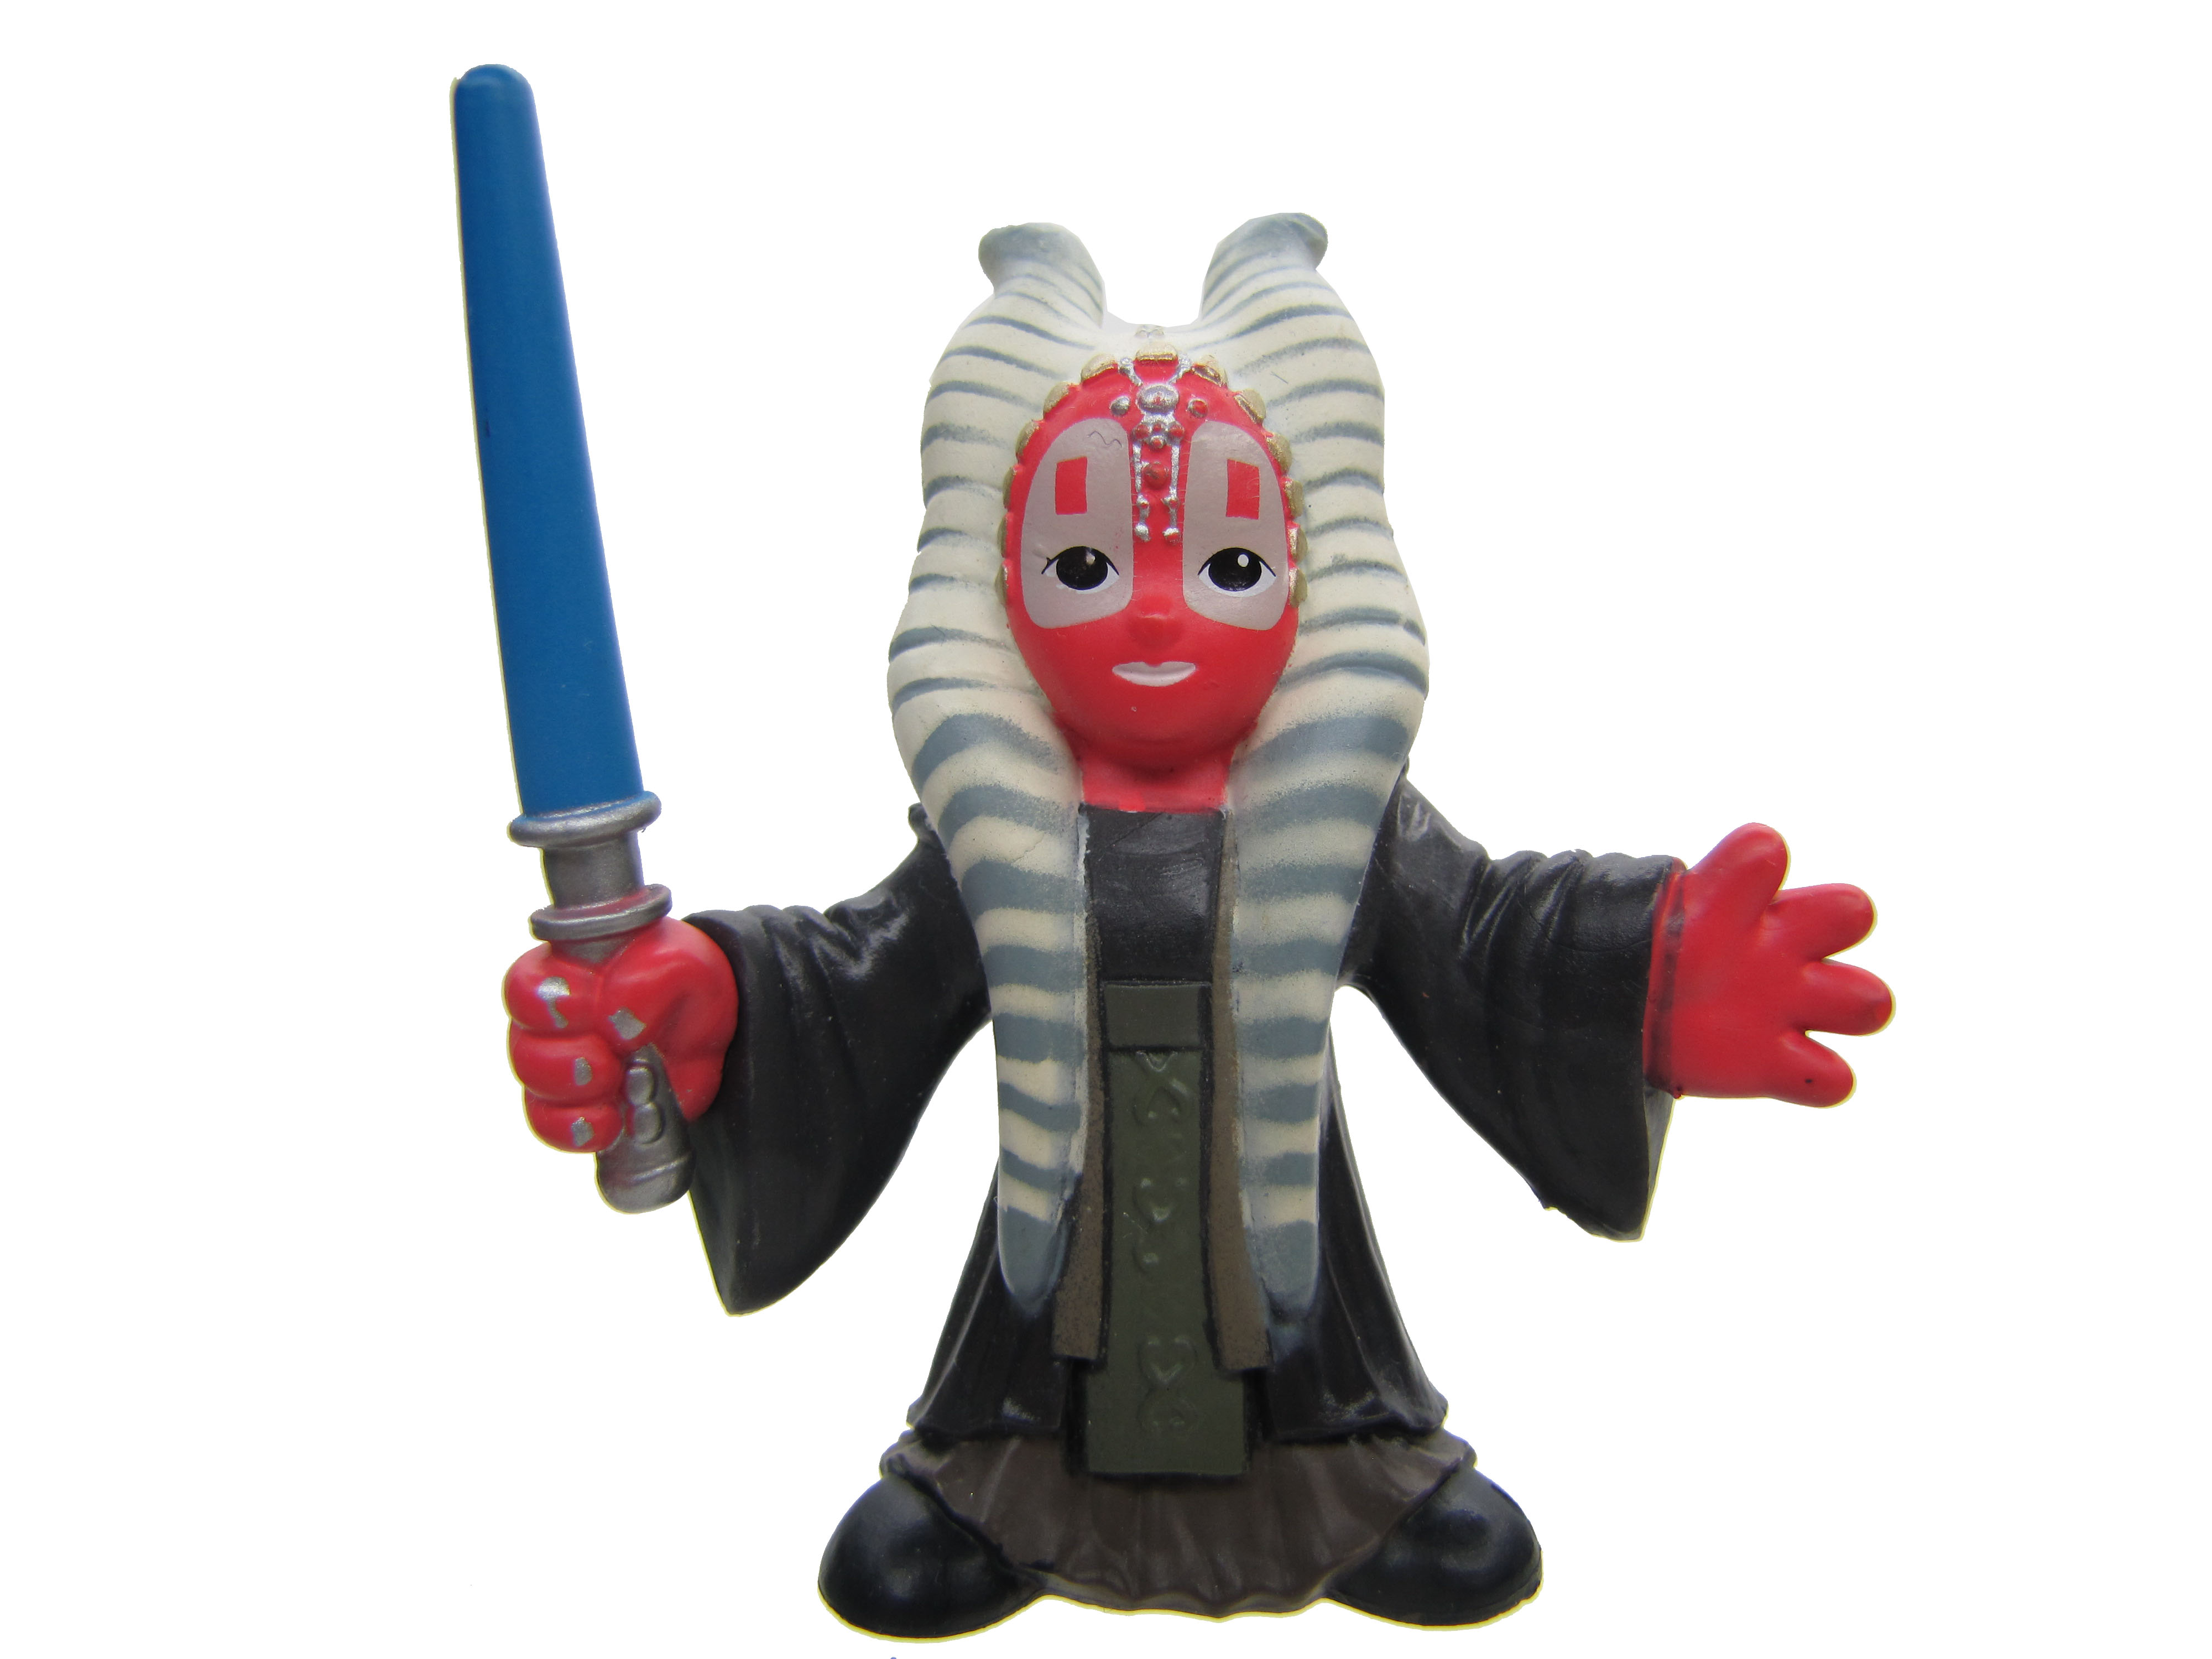 The Best and Most Comprehensive Shaak Ti Revenge Of The